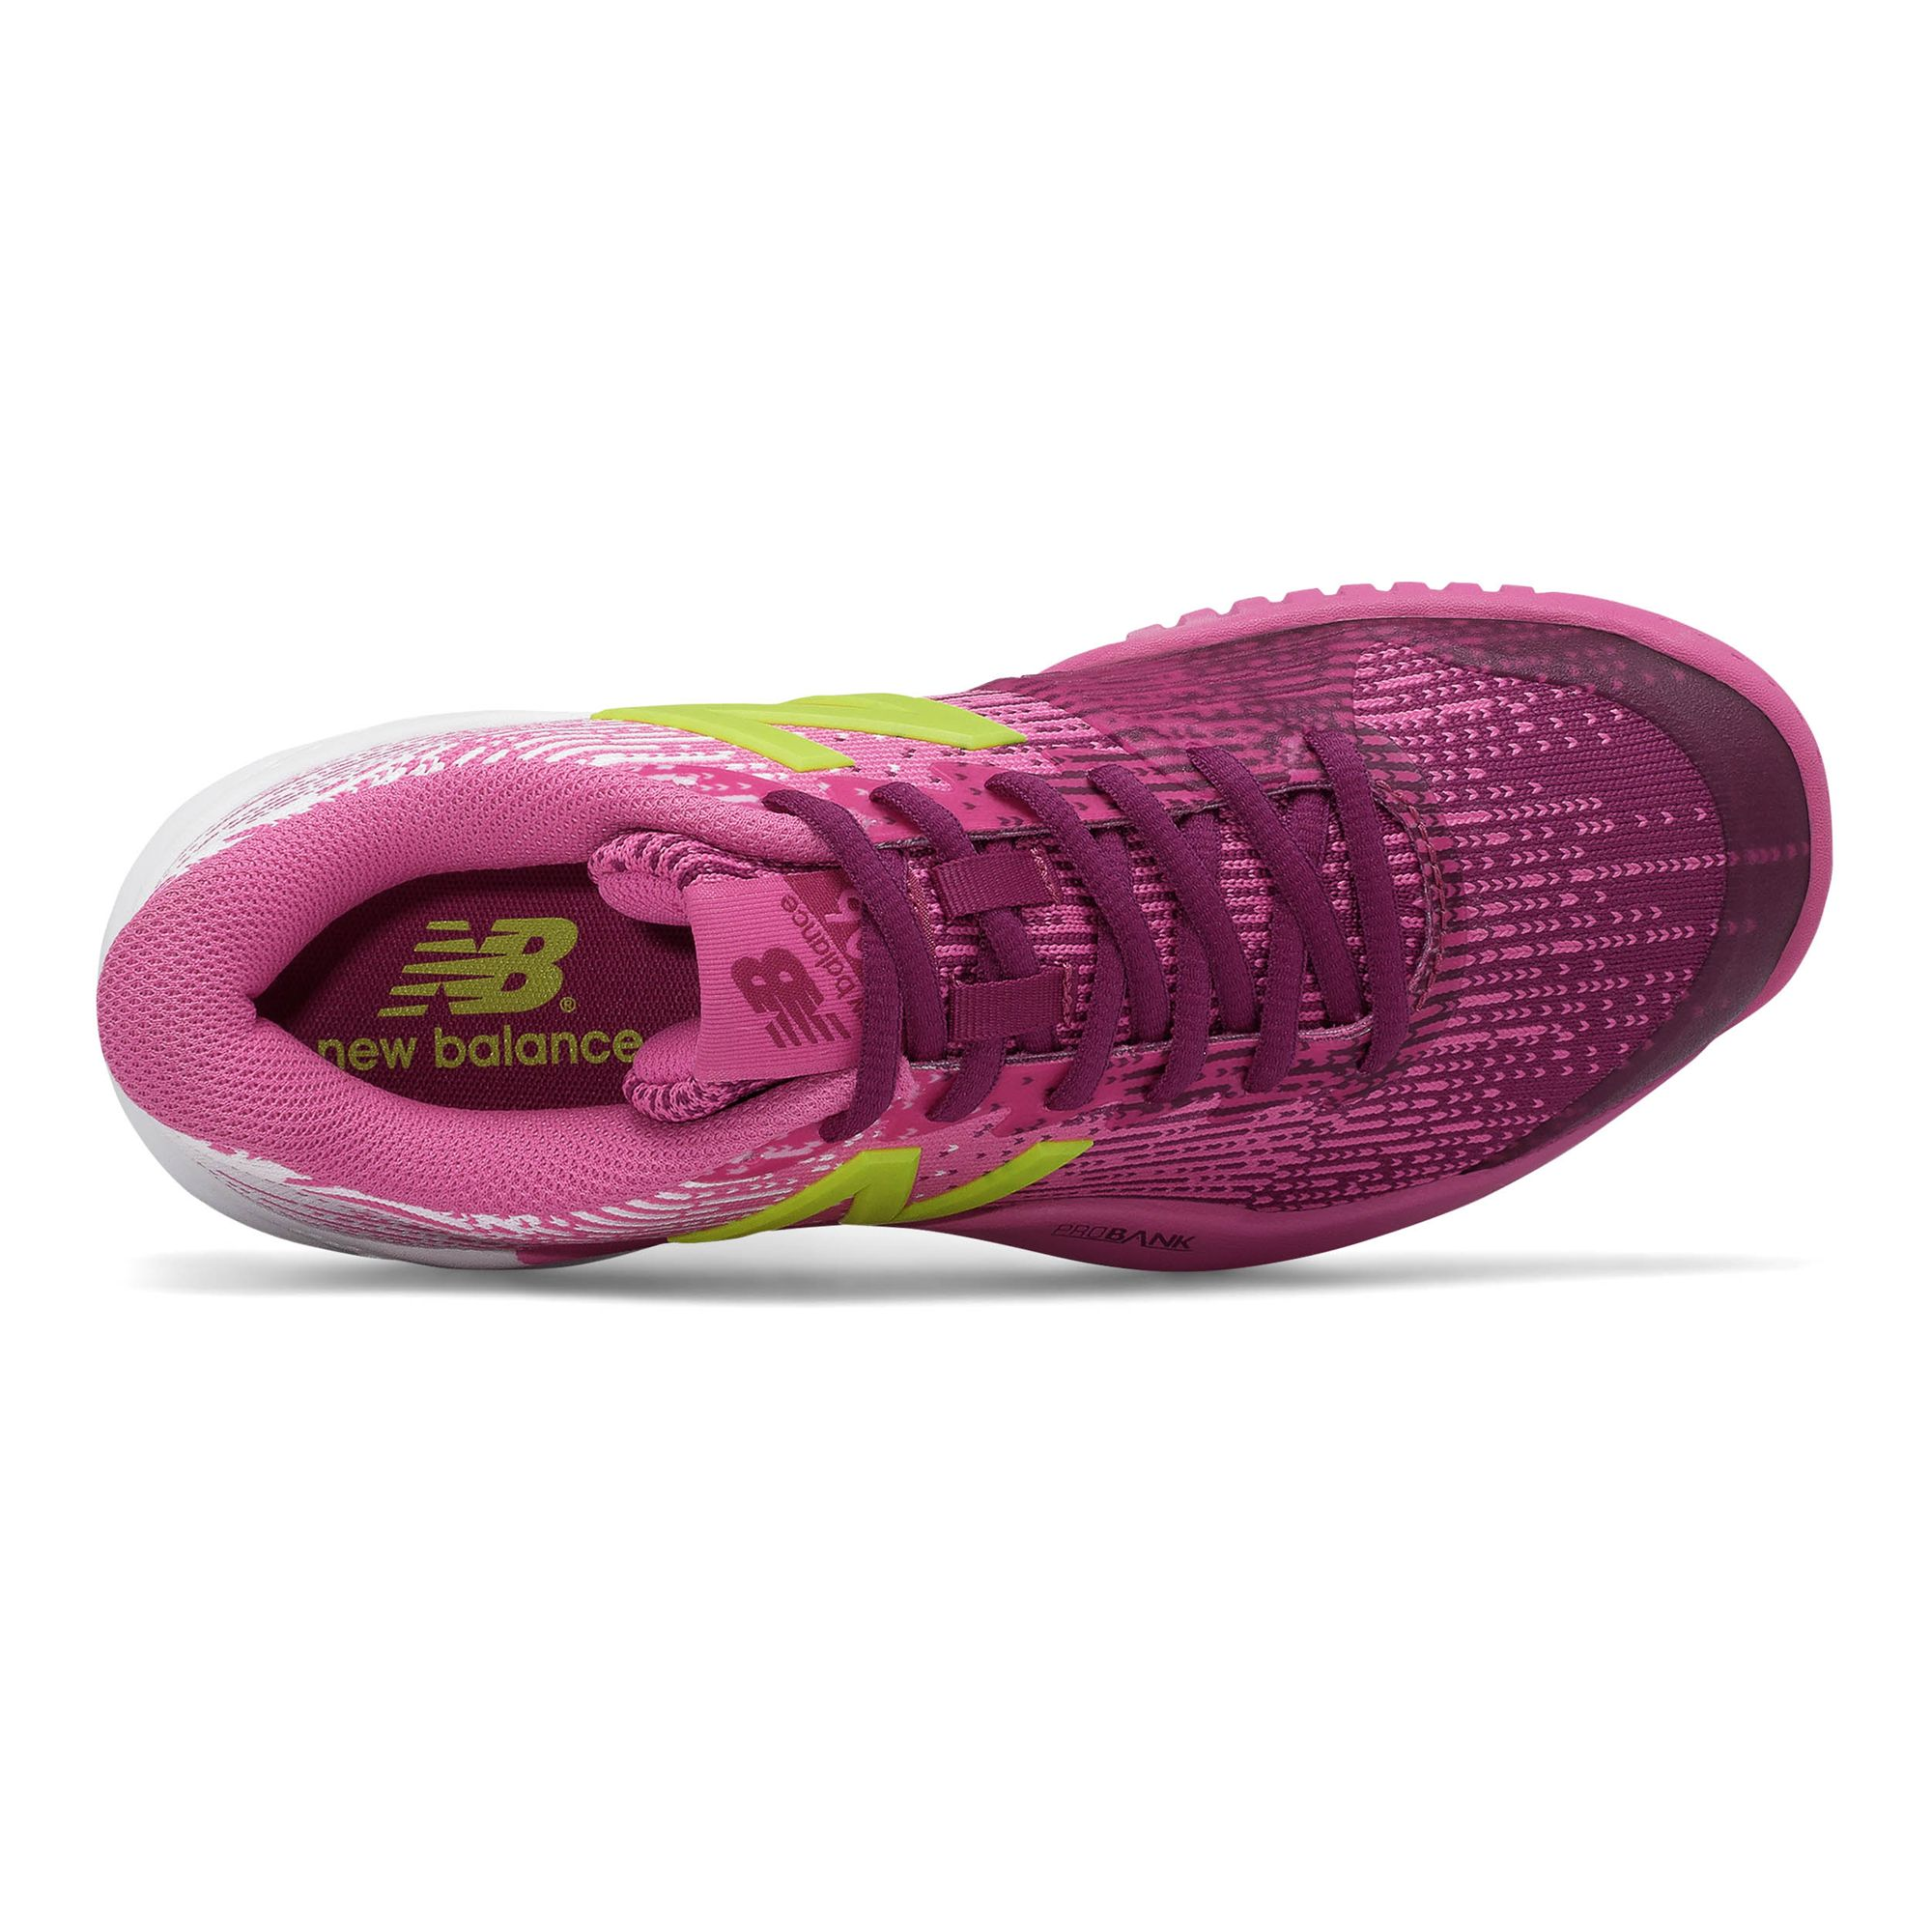 New Balance Wc  Tennis Shoes Size